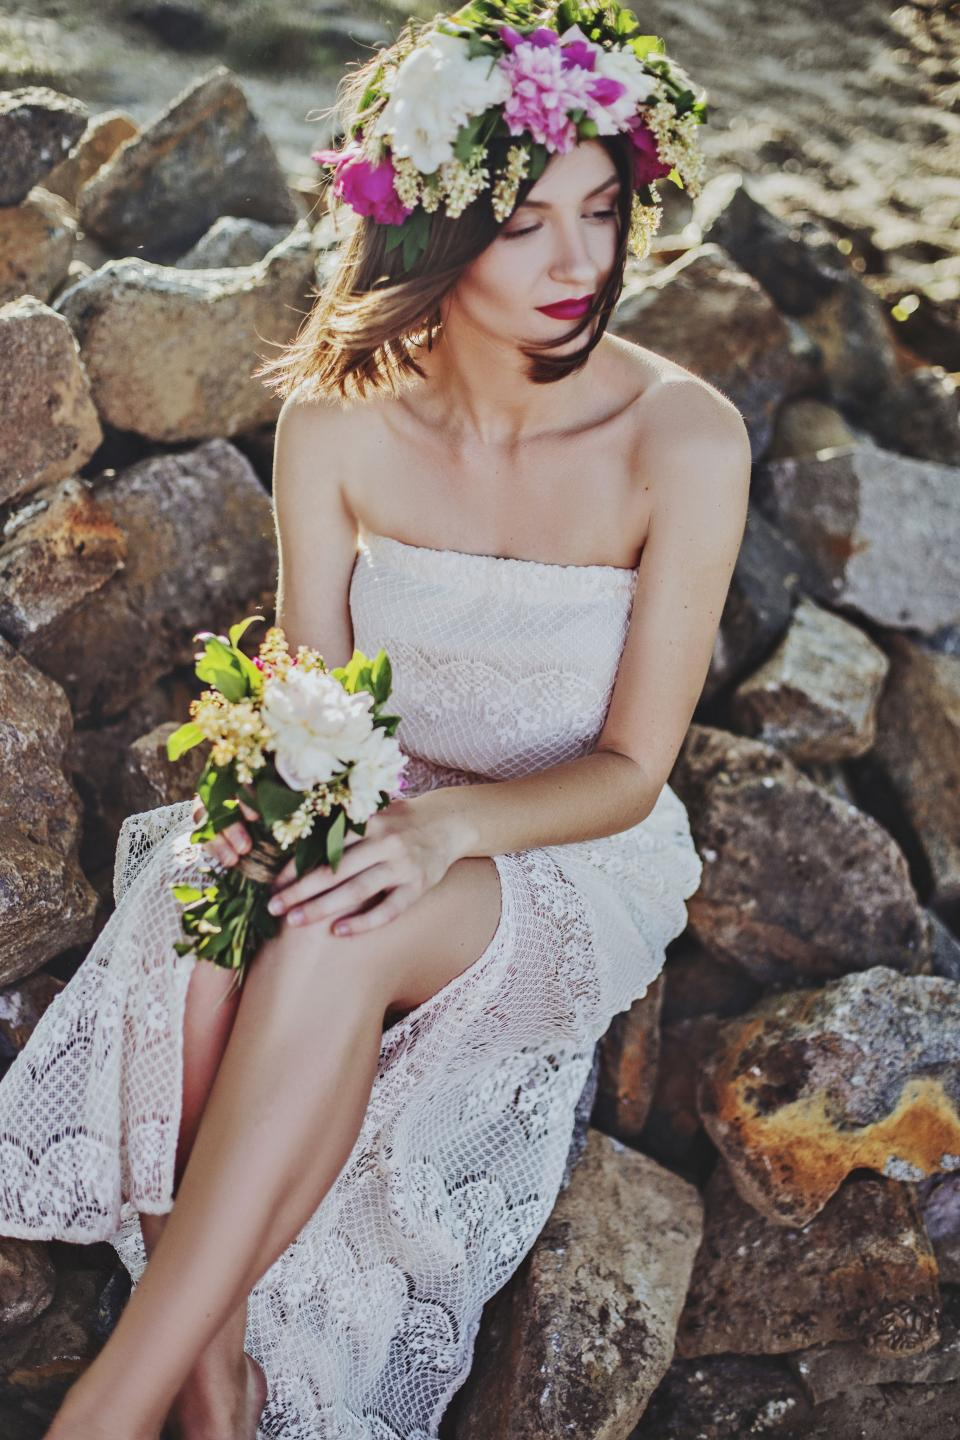 people woman wedding dress bouquet rock stone flowers crown